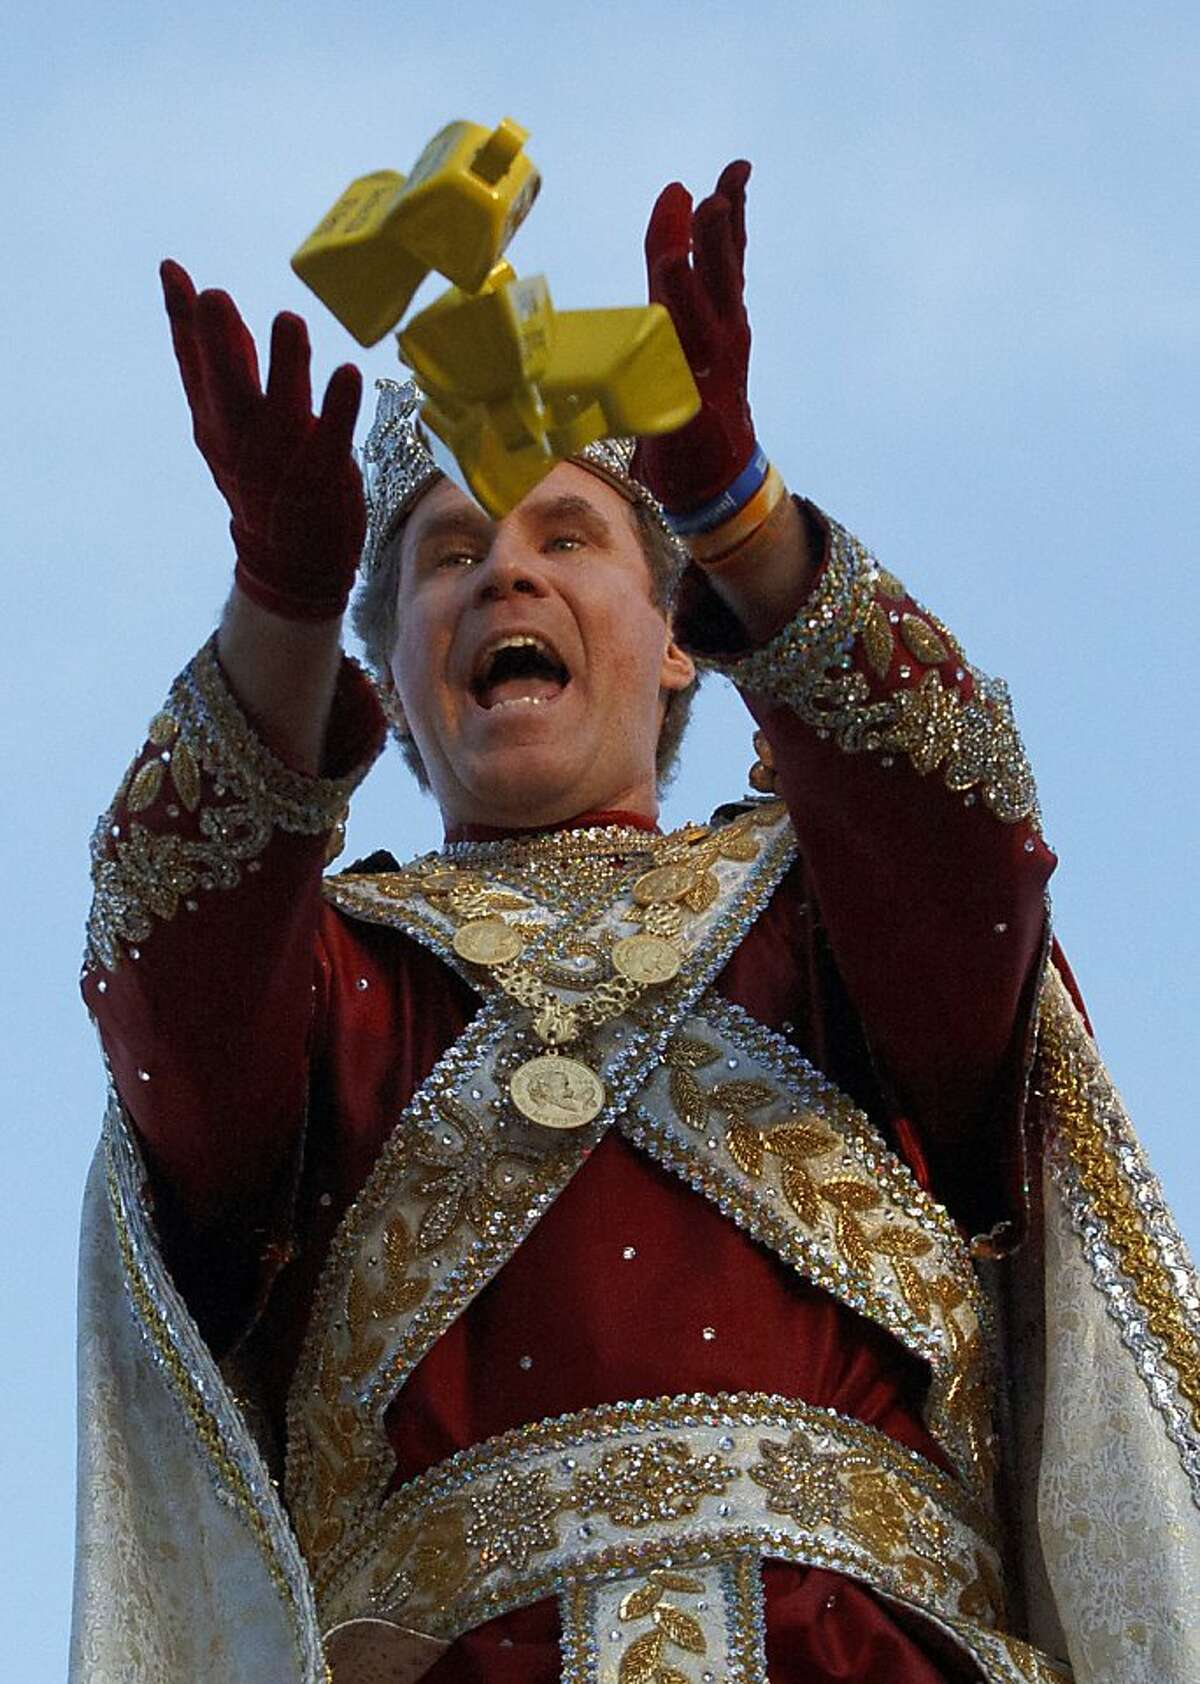 """Actor Will Ferrell reigns as Bacchus XLIV for the Krewe of Bacchus parade on Napoleon Ave. in New Orleans on Sunday, Feb.19, 2012. Ferrell has been in New Orleans since November, filming a movie recently renamed """"The Campaign."""" (AP Photo/The Times-Picayune Matthew Hinton)"""